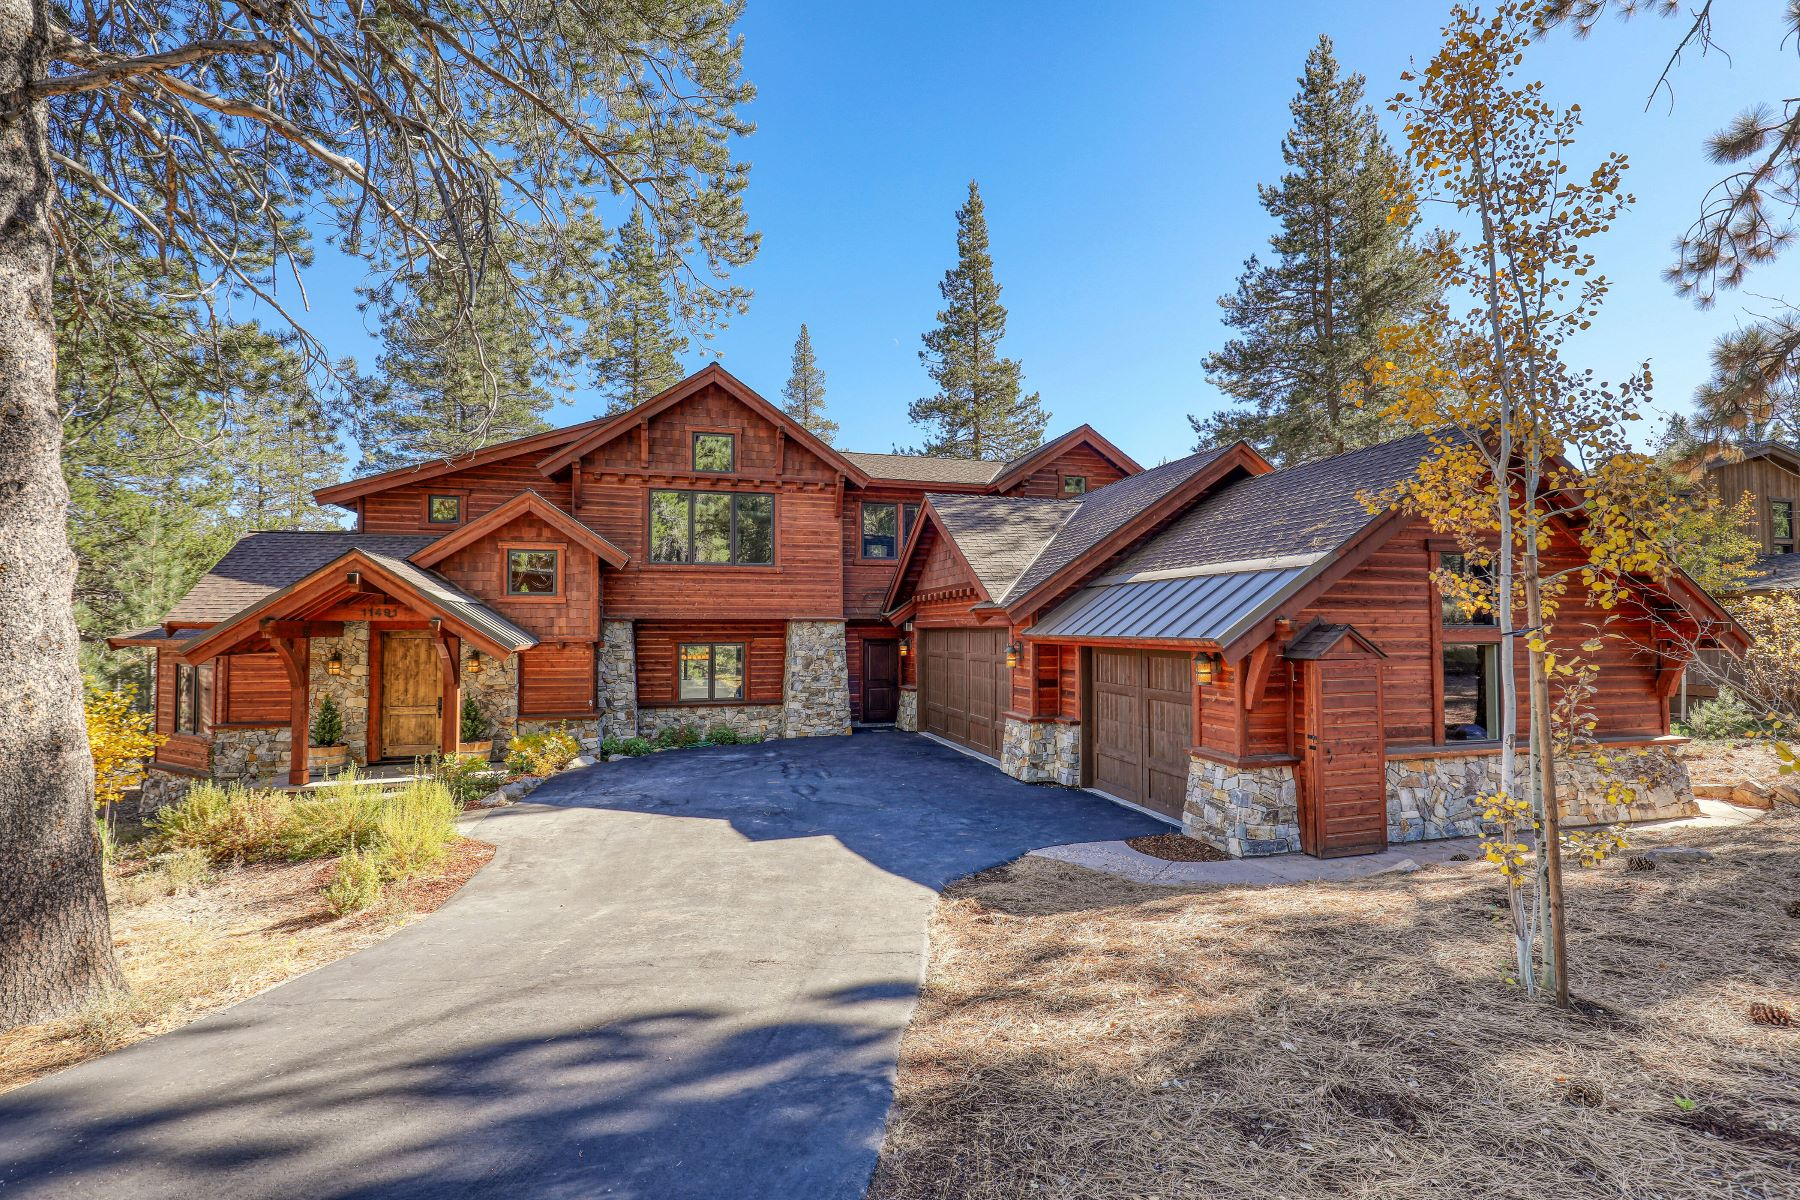 Property for Active at Timeless Custom Built Gray's Crossing Home 11491 Ghirard Road Truckee, California 96161 United States